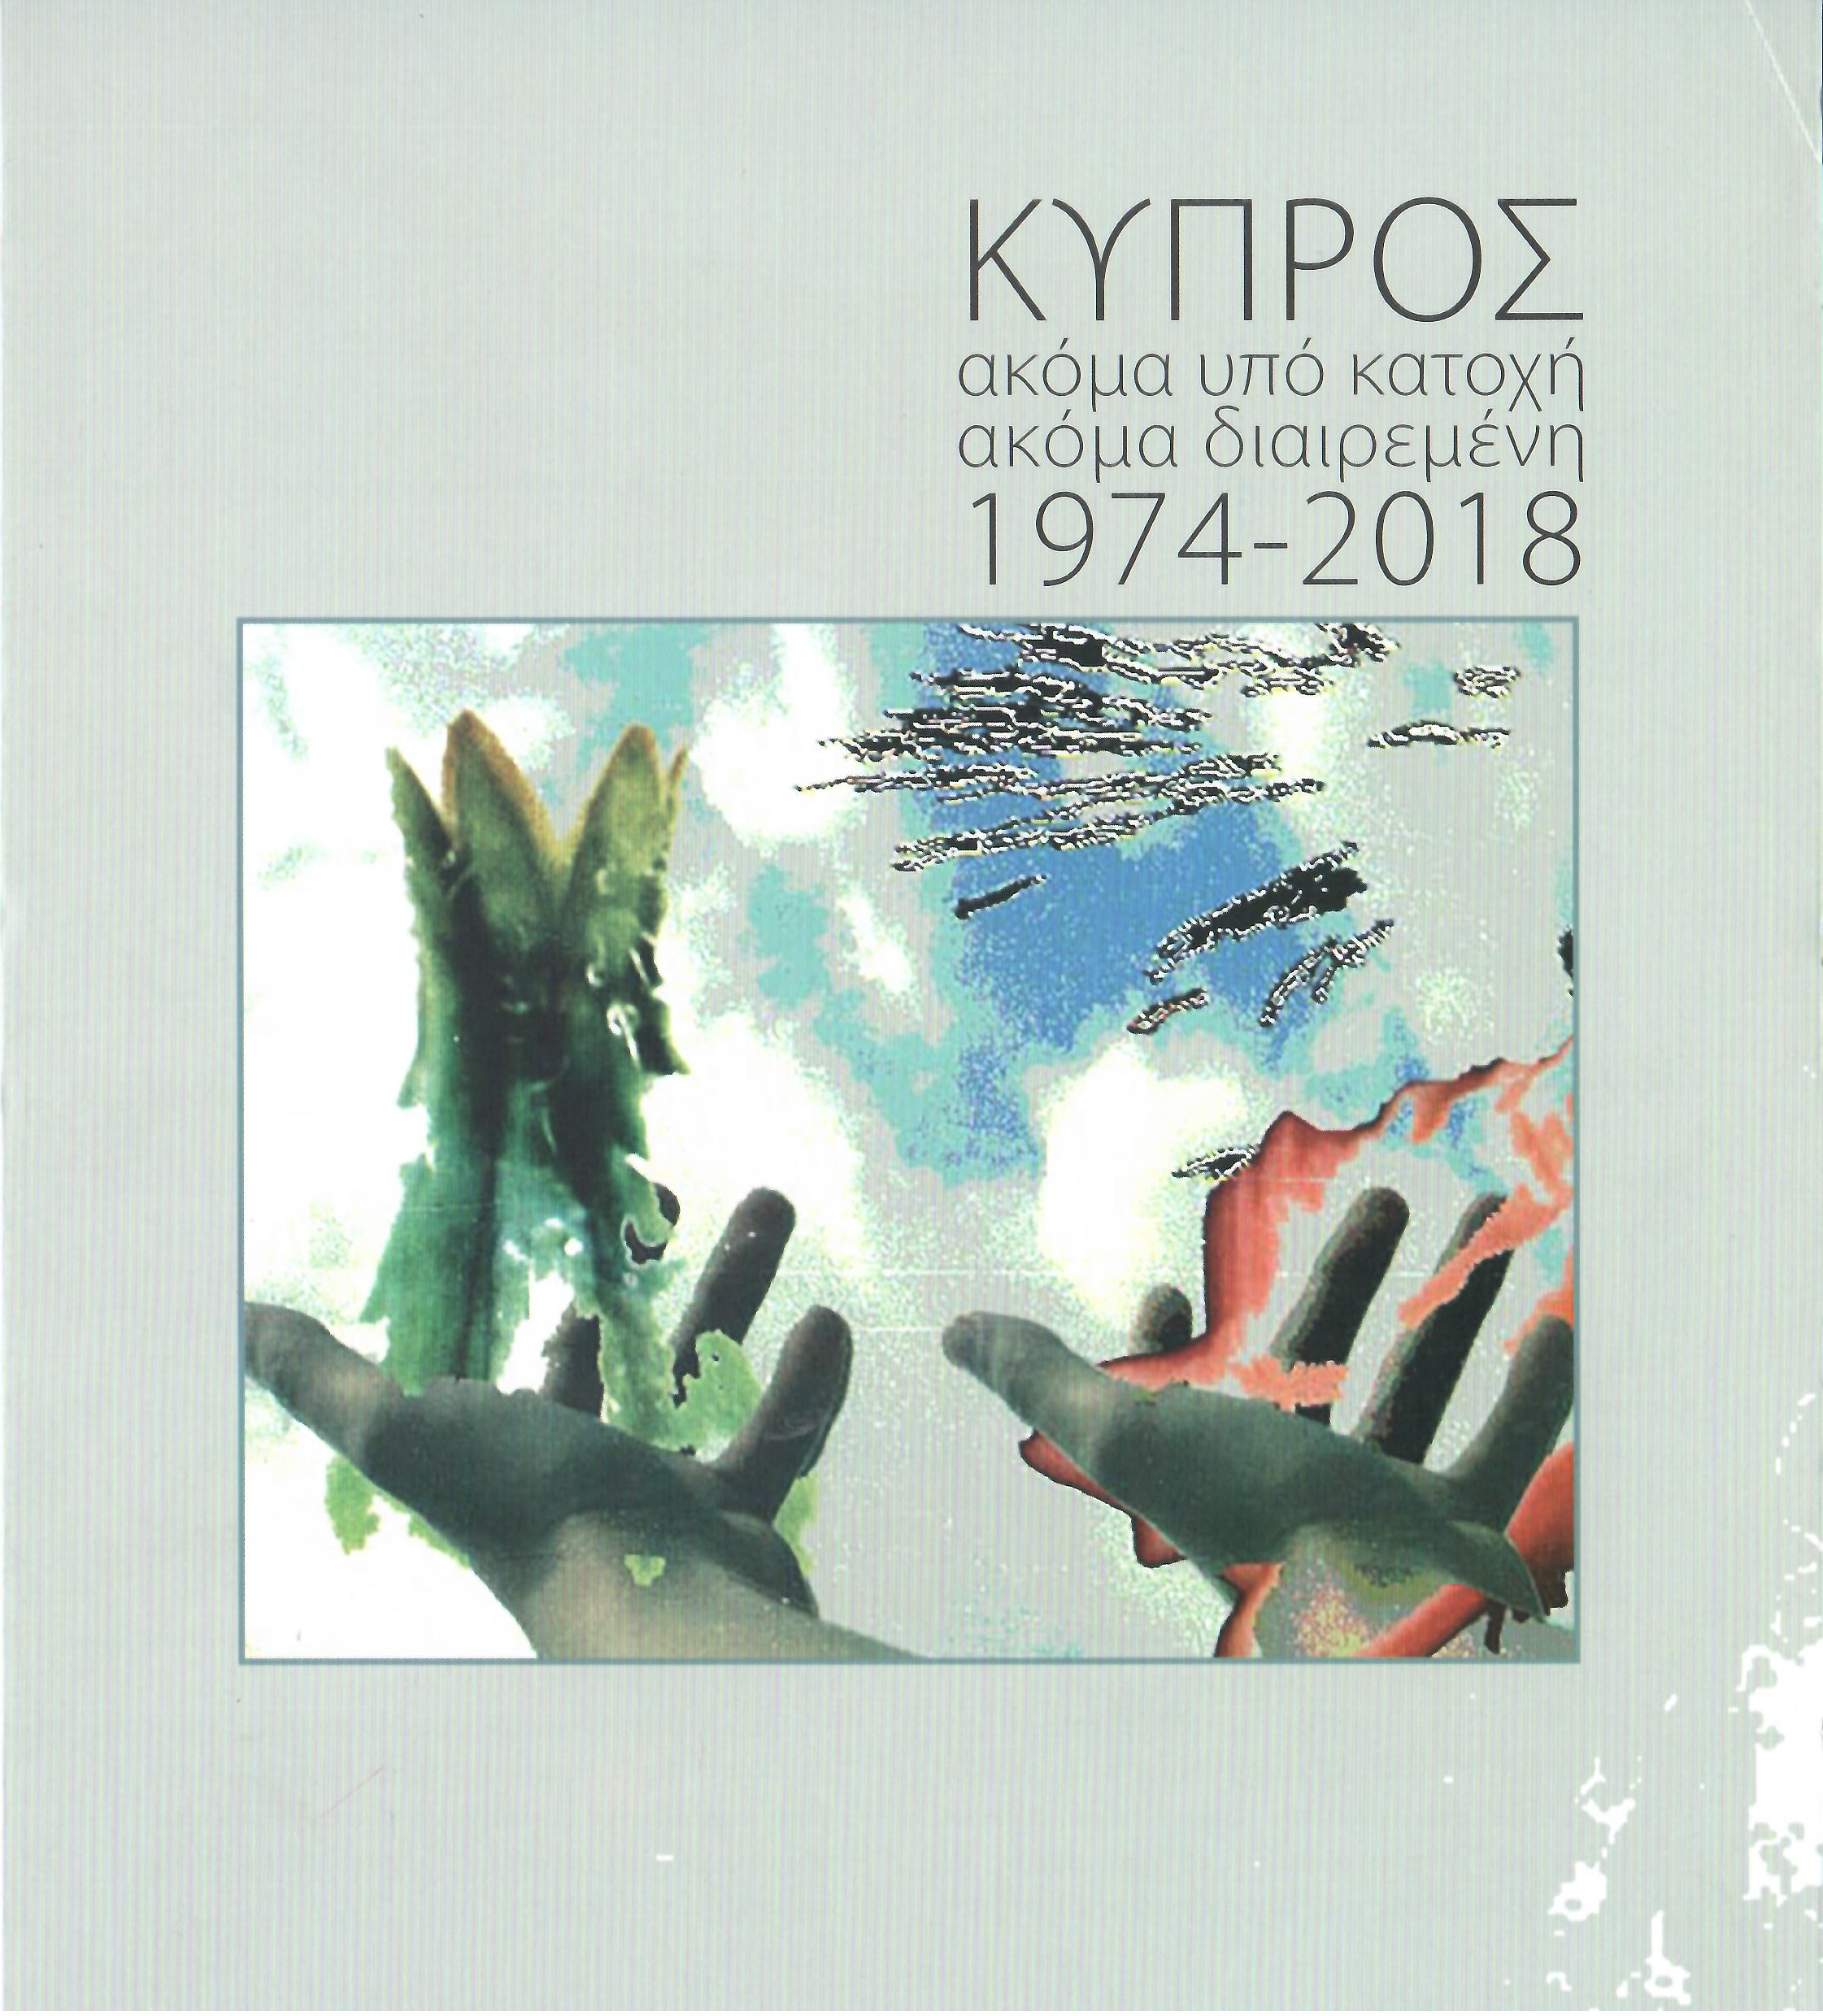 1974 - 2018 Cyprus: Still occupied, still divided